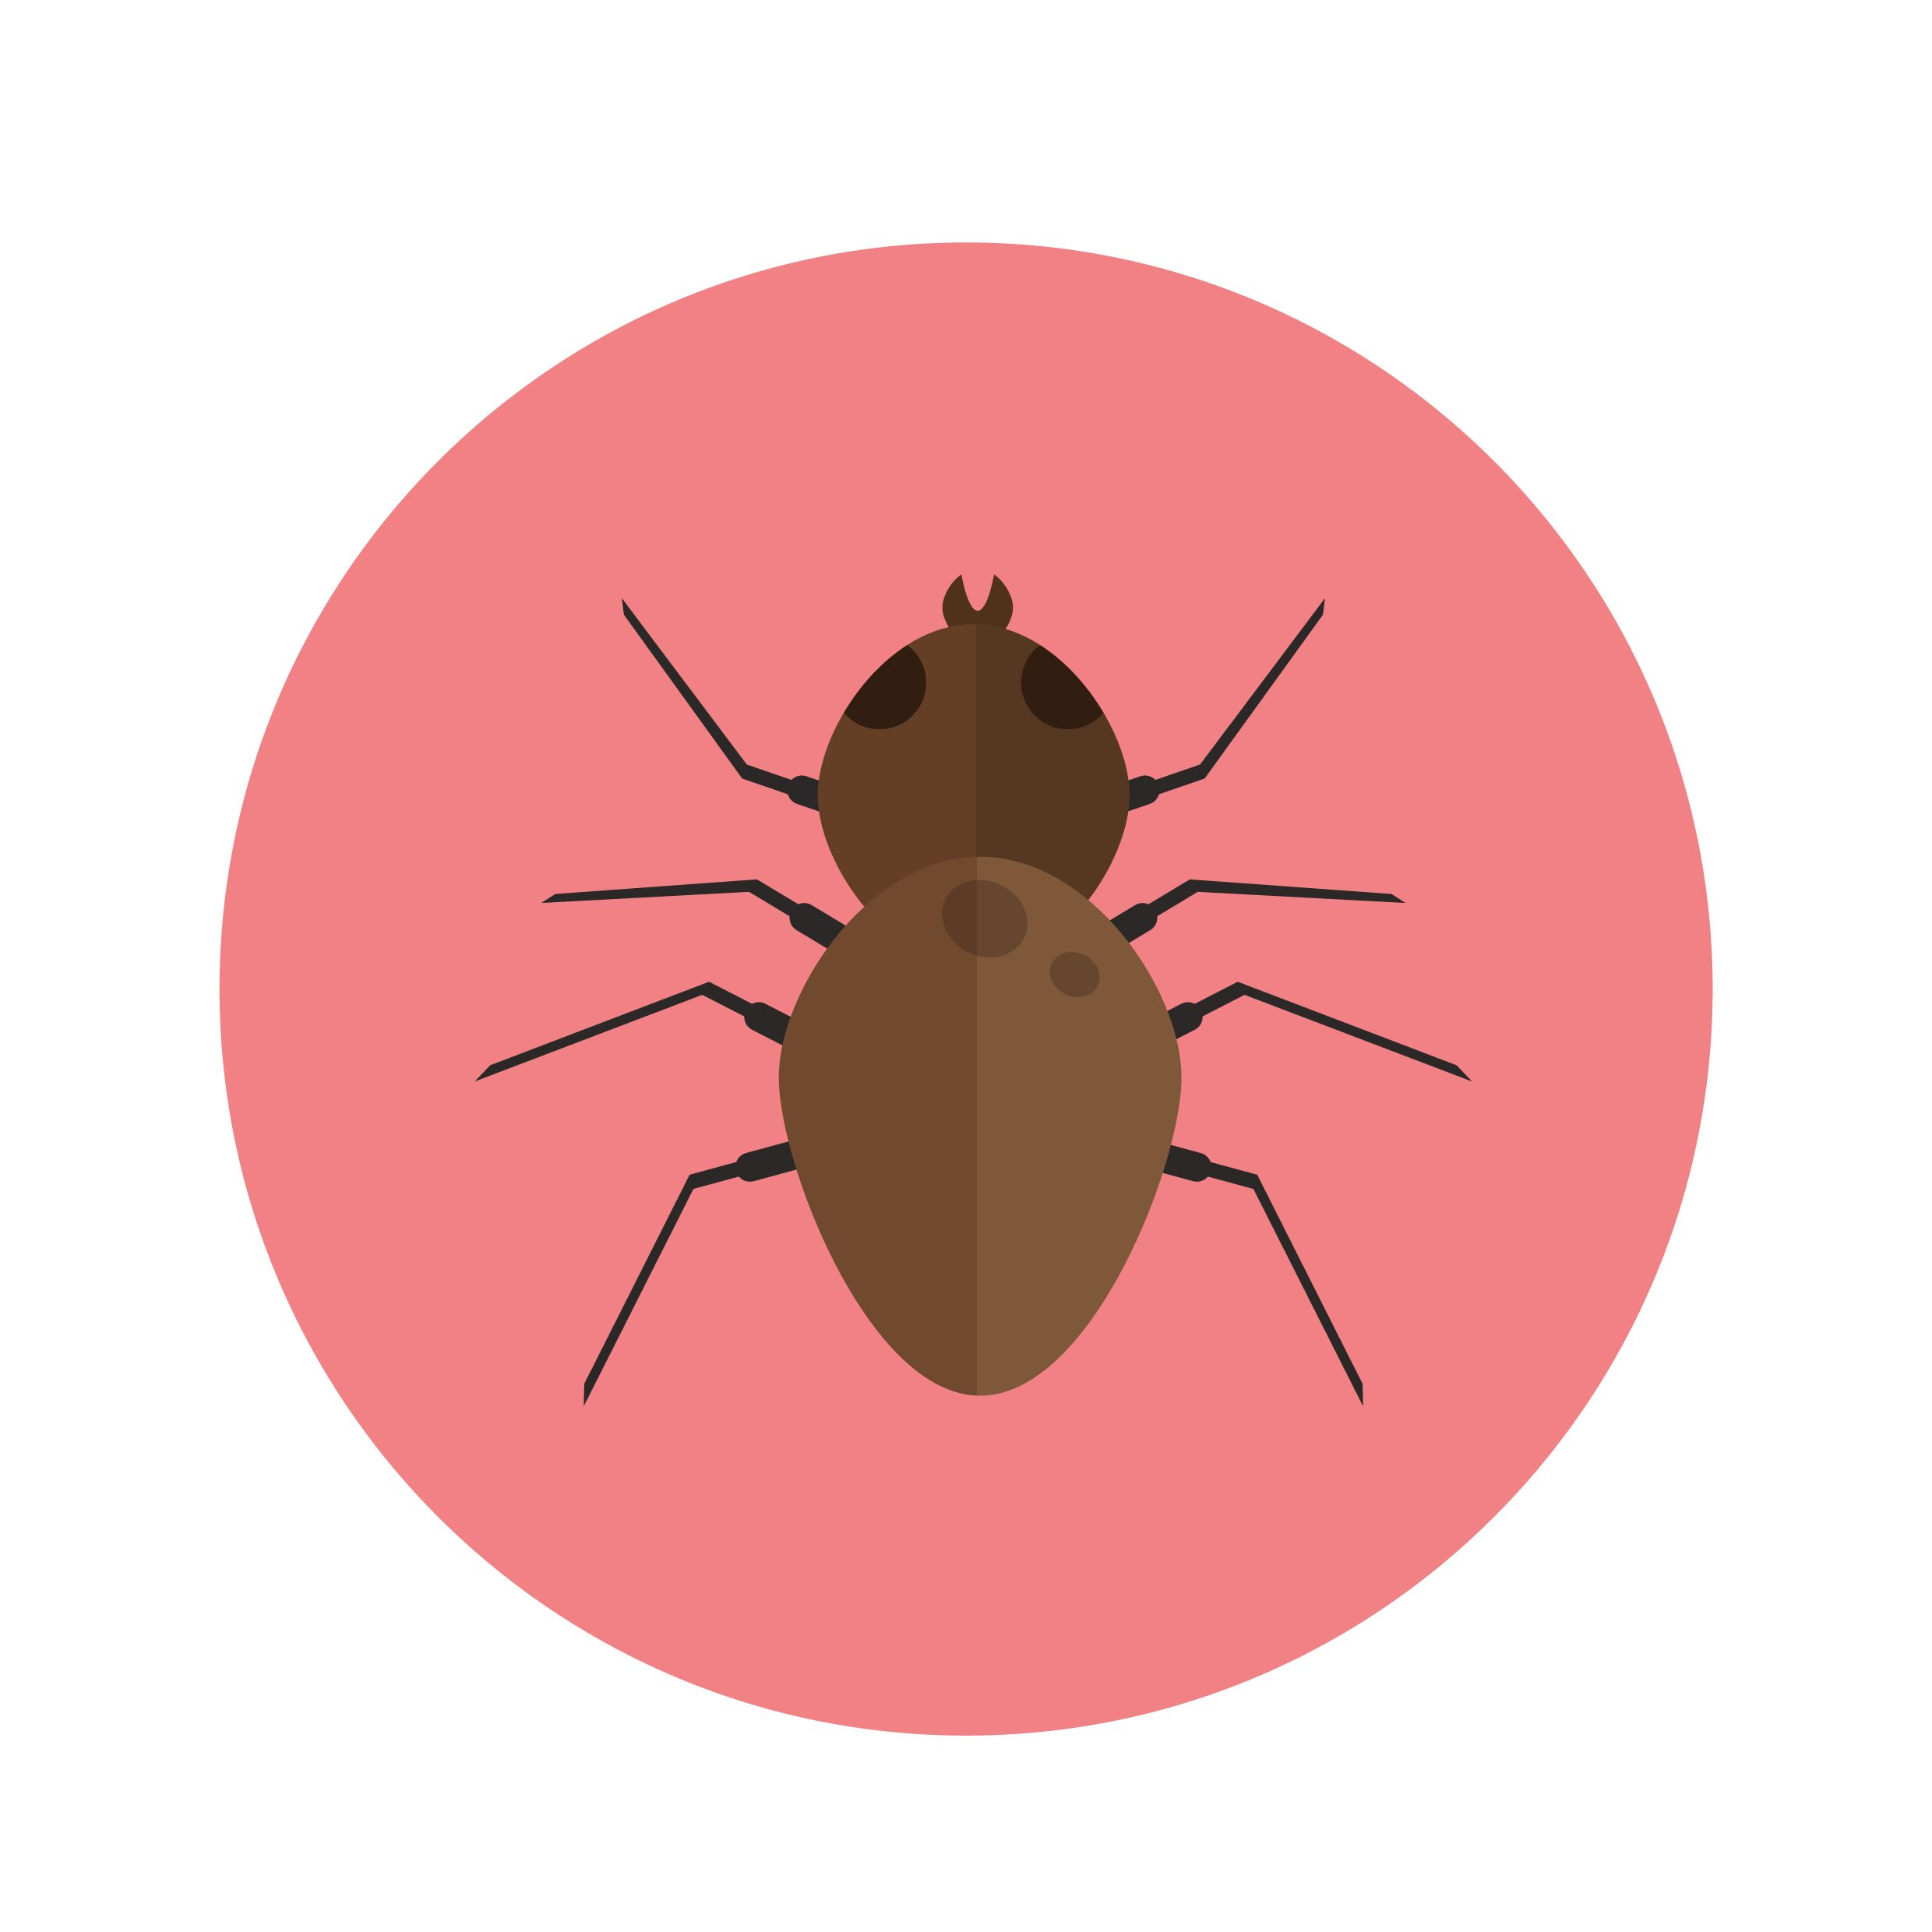 An illustration of a bed bug